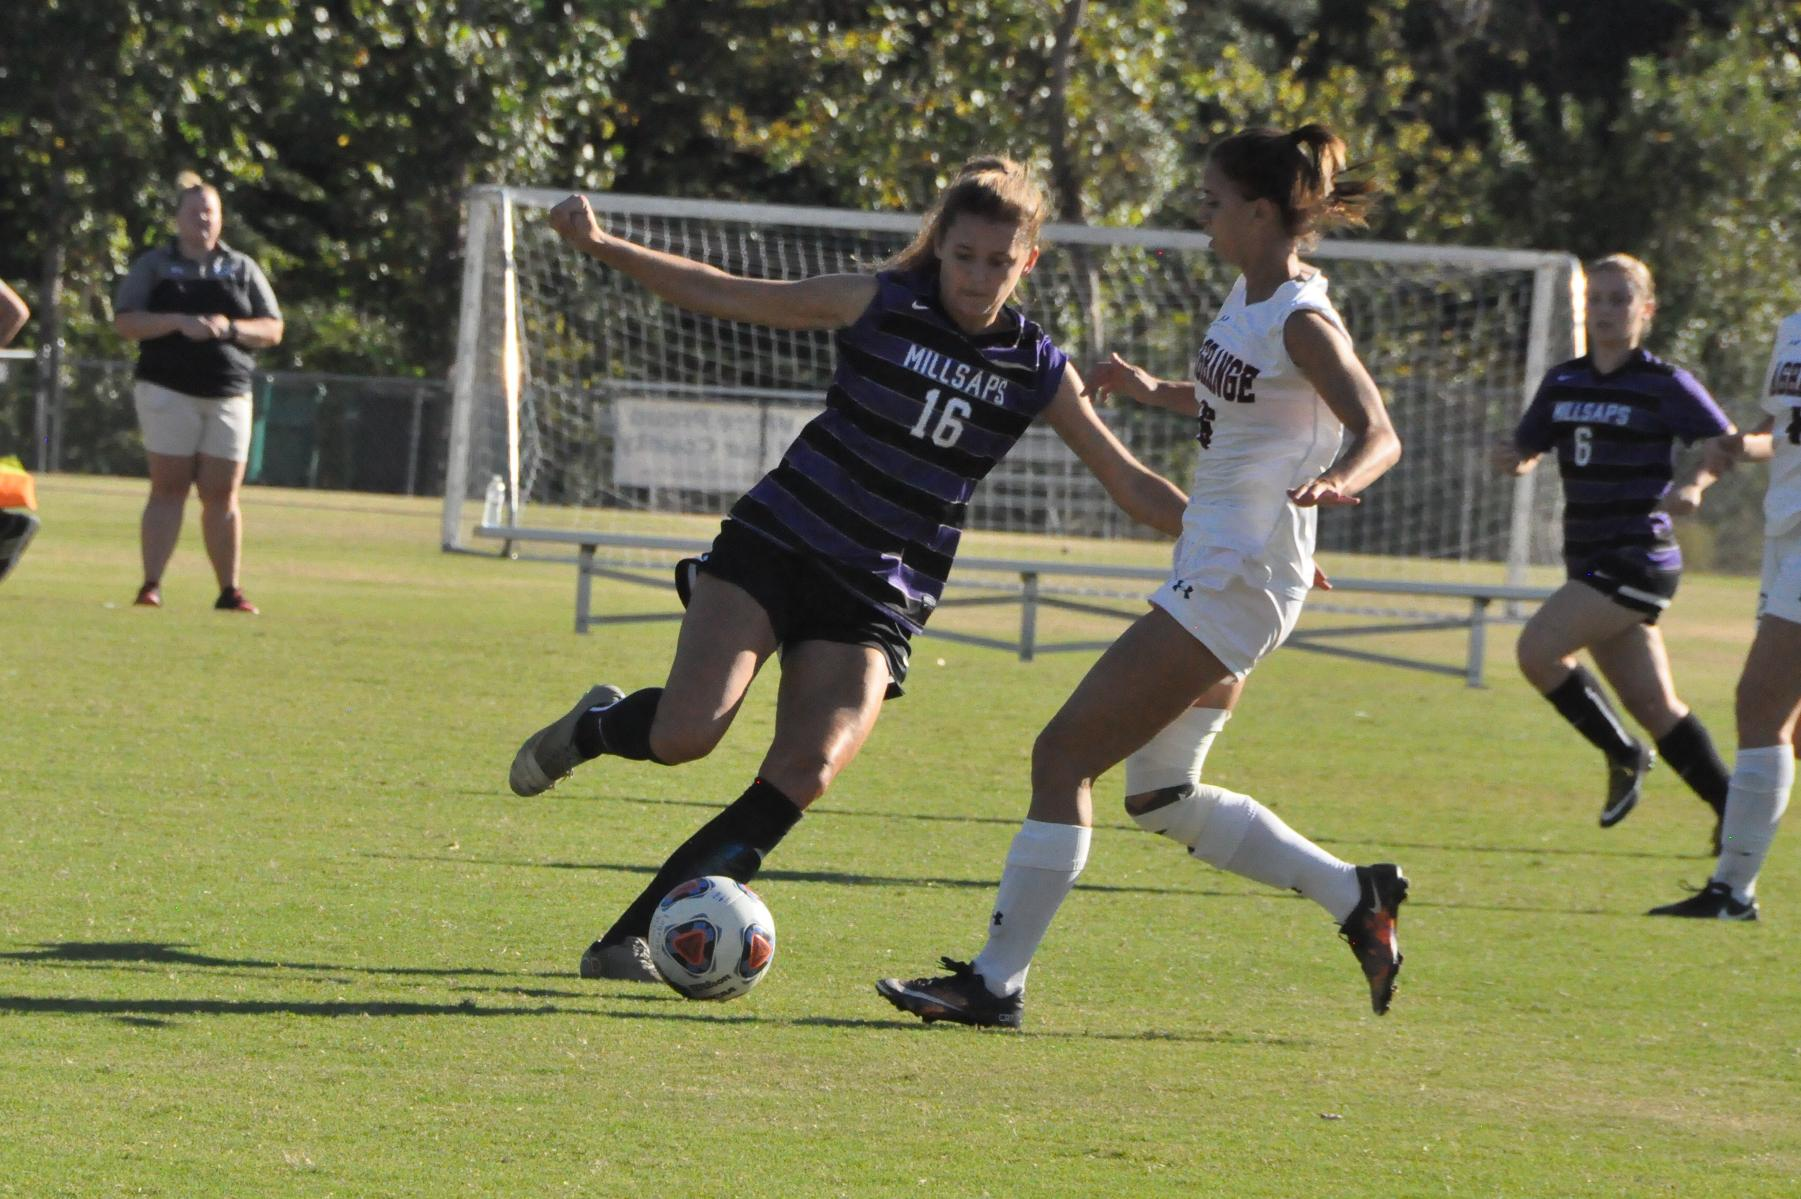 Women's Soccer: Panthers shut out Millsaps 3-0